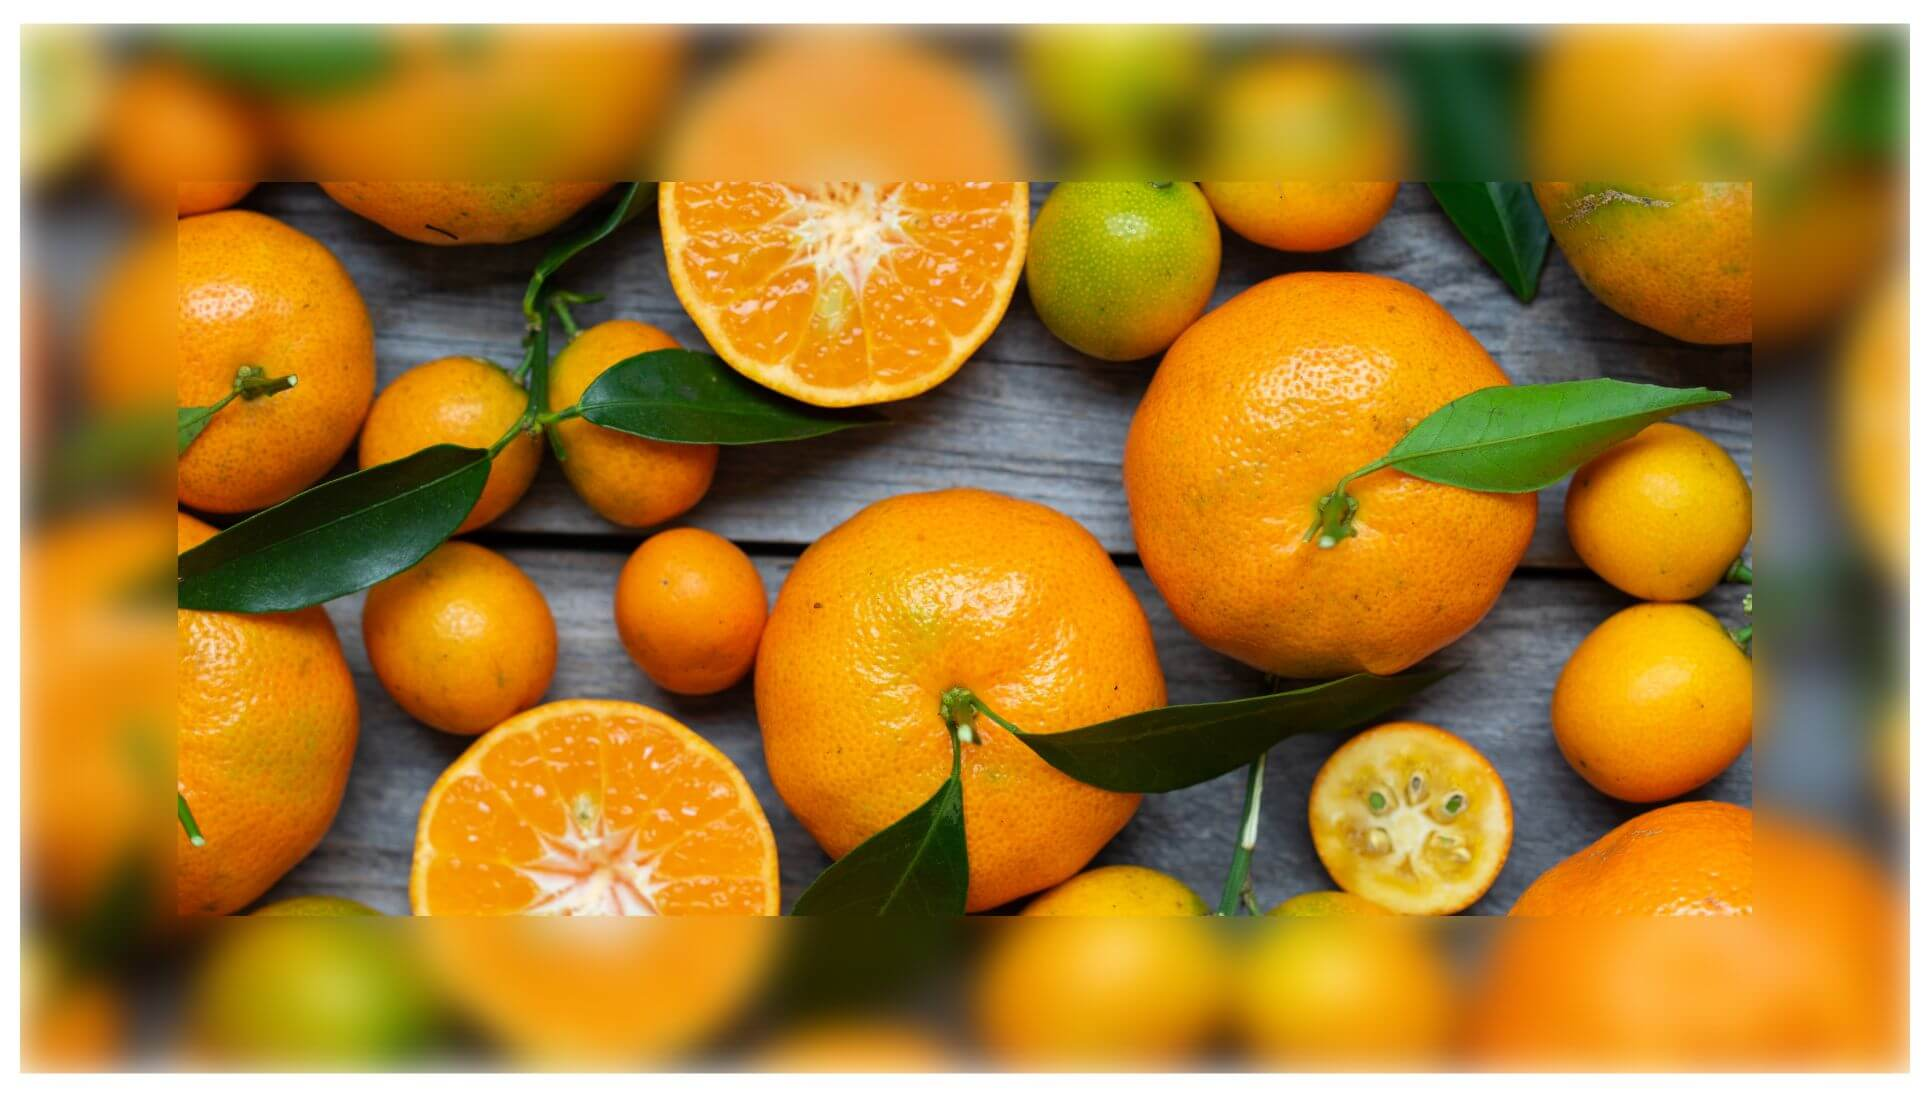 Screenshot of an element with a background image that shows oranges on a wooden table. The border of this element is blurred.